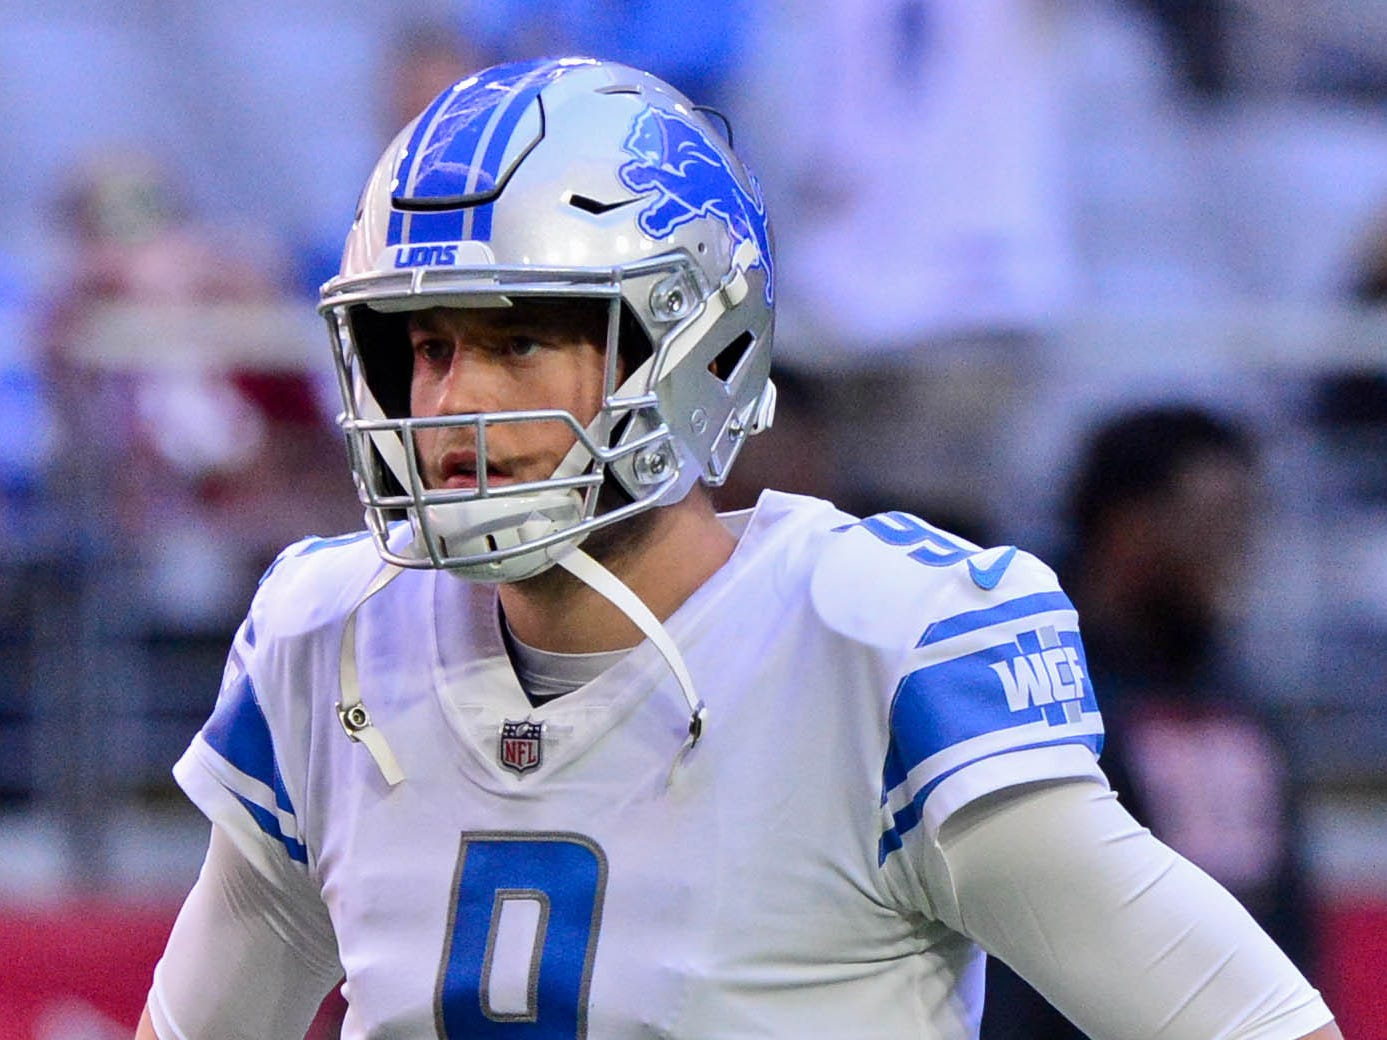 Detroit Lions vs. Buffalo Bills: Scouting report and prediction